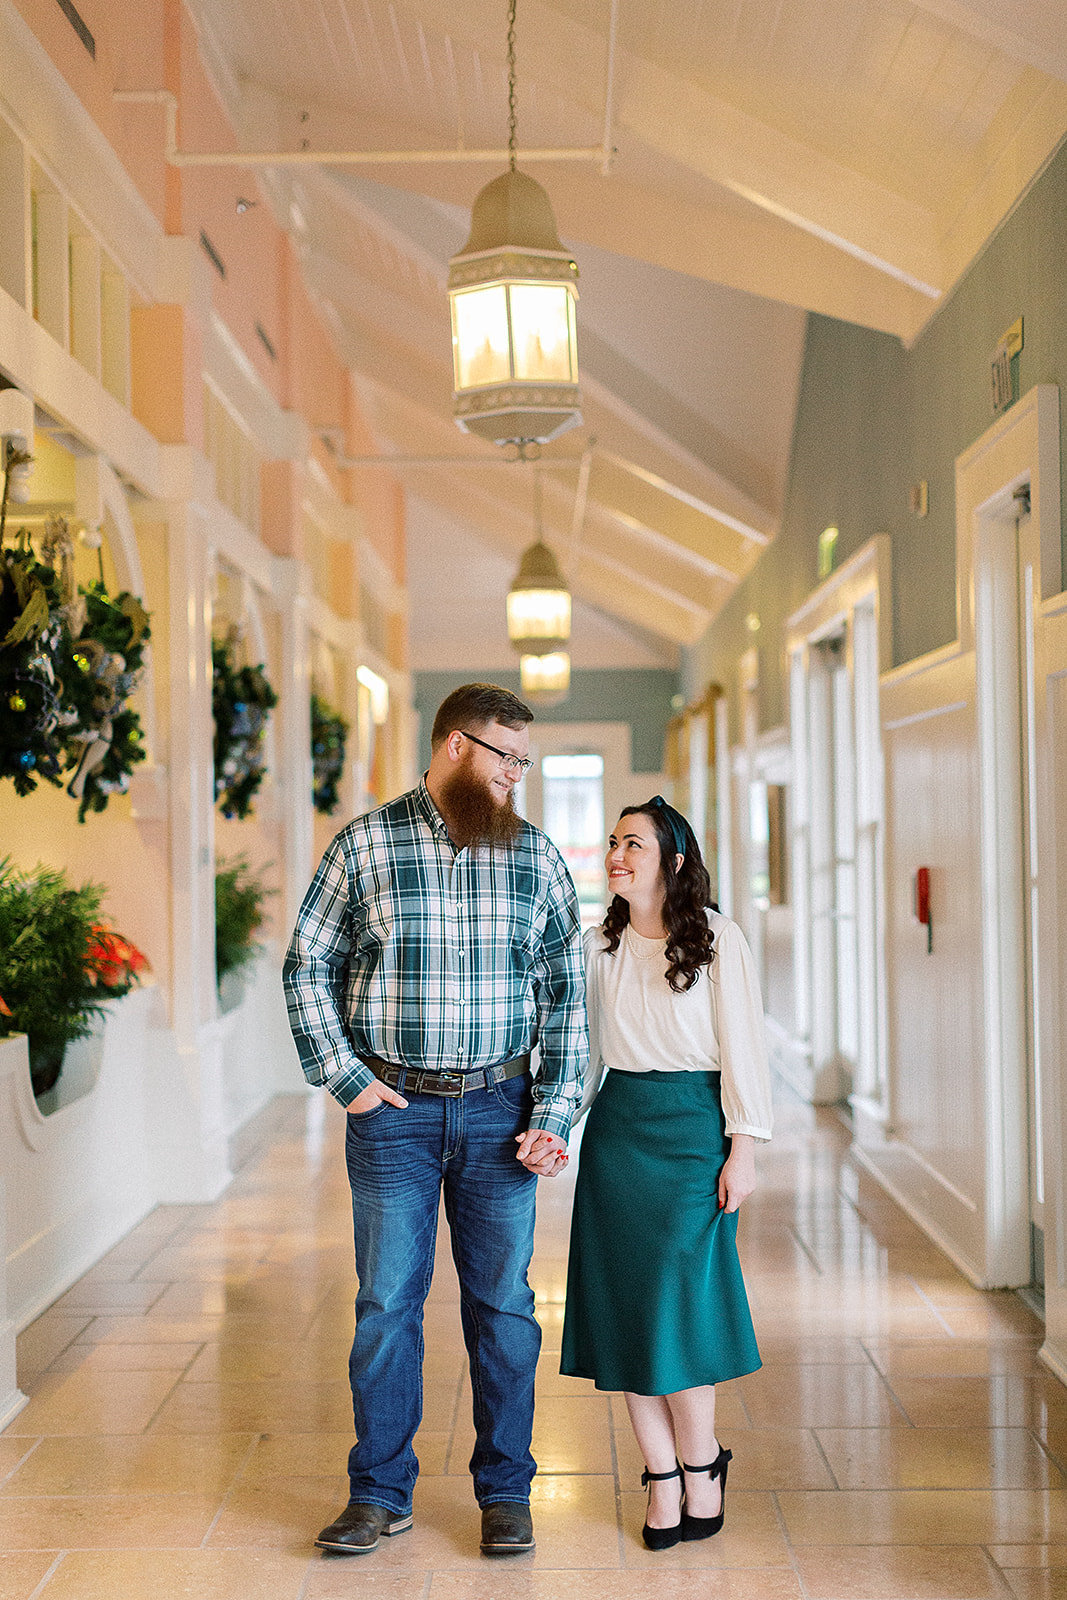 Cassidy_+_Kylor_Proposal_at_Disney_s_Beach_Club_Resort_Photographer_Casie_Marie_Photography-32